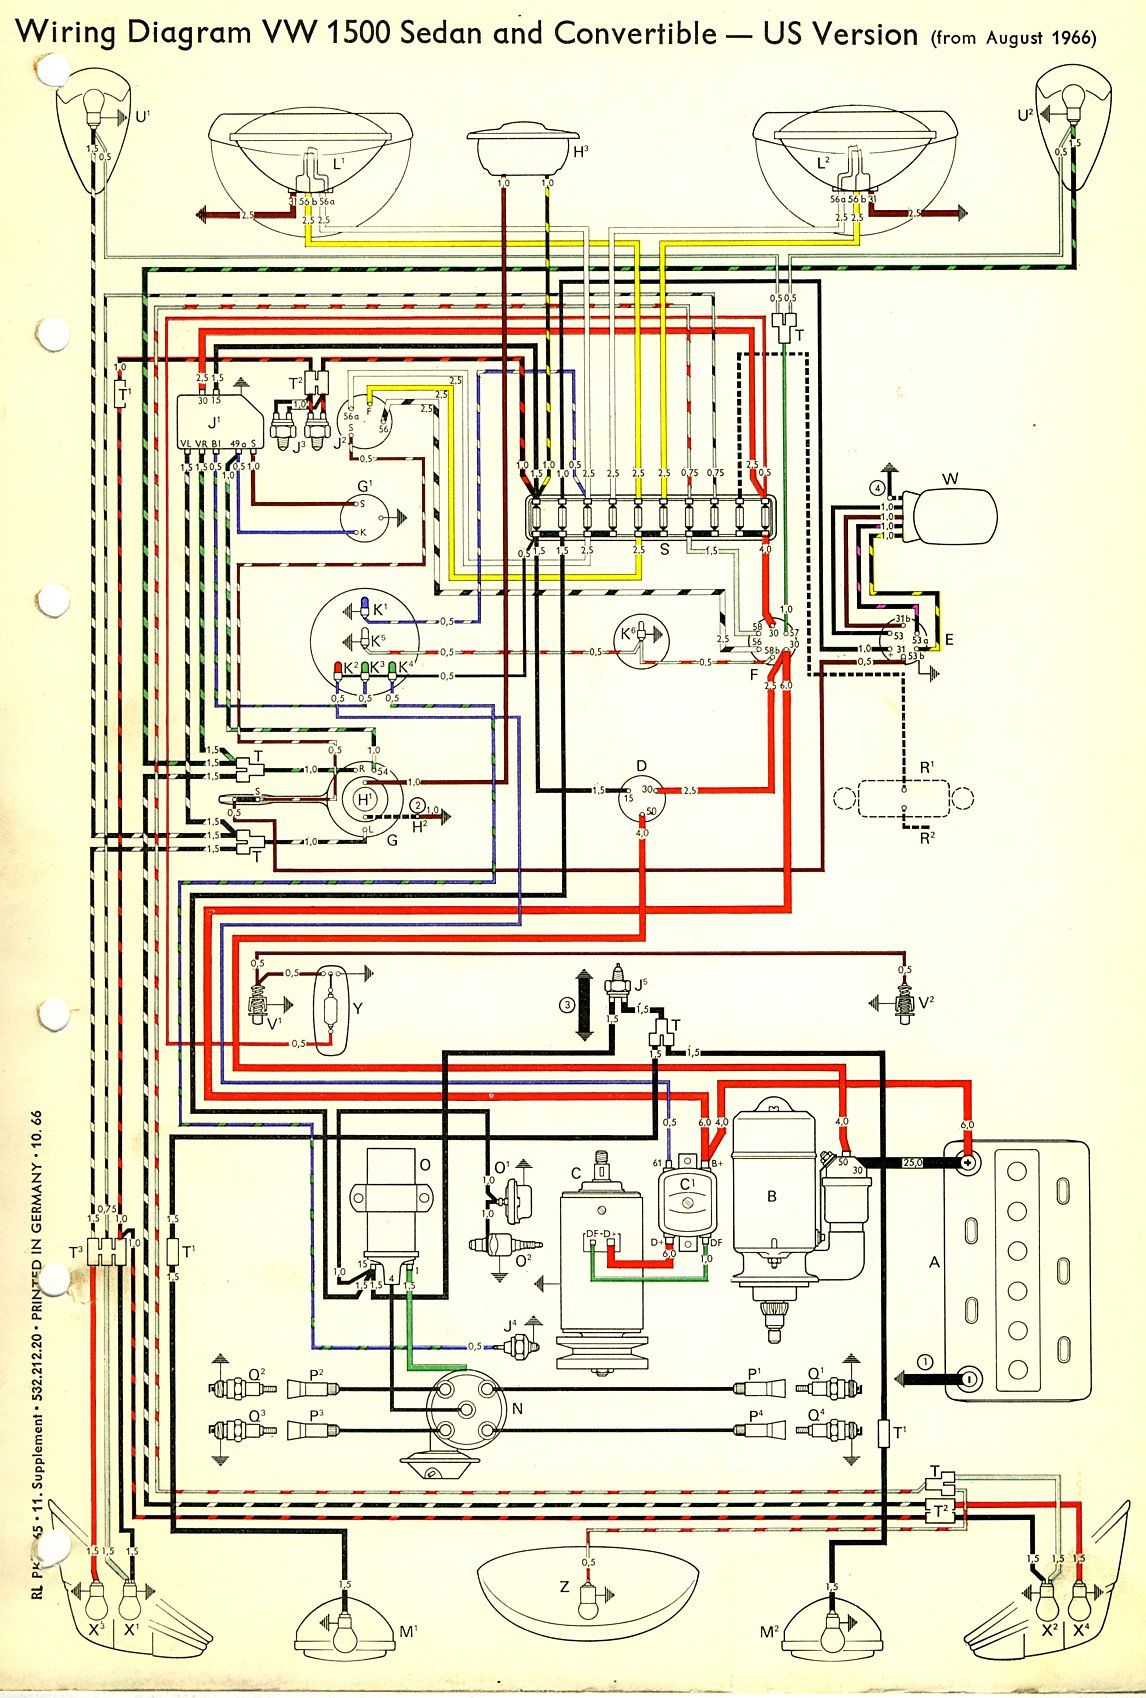 1adf990c0efb617c789fdd21338448b0 1967 beetle wiring diagram (usa) thegoldenbug com best 1967 vw vw beetle 2002 radio wiring diagram at mifinder.co